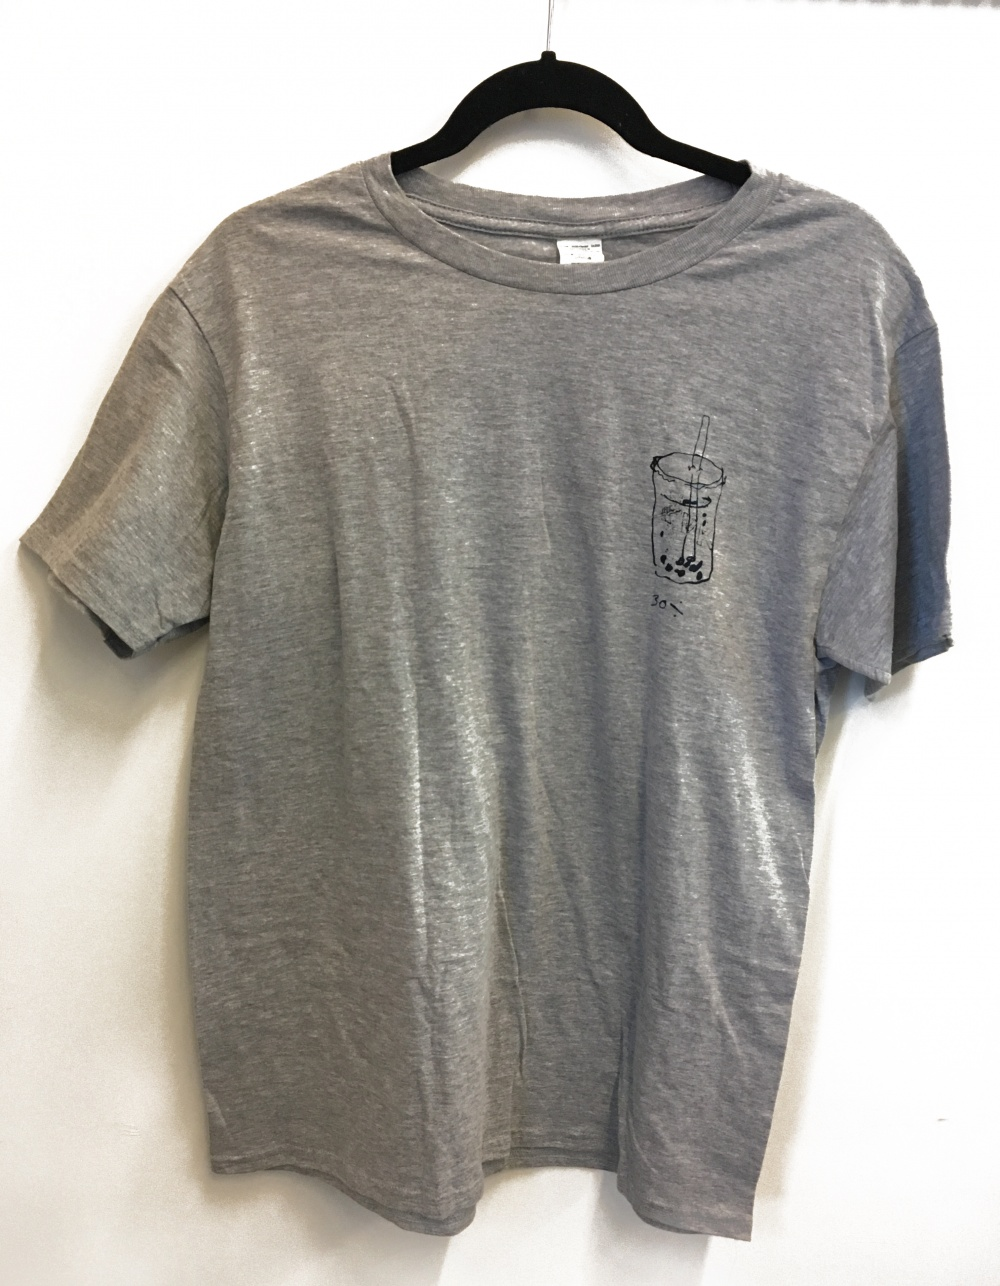 xvk bubble t grey